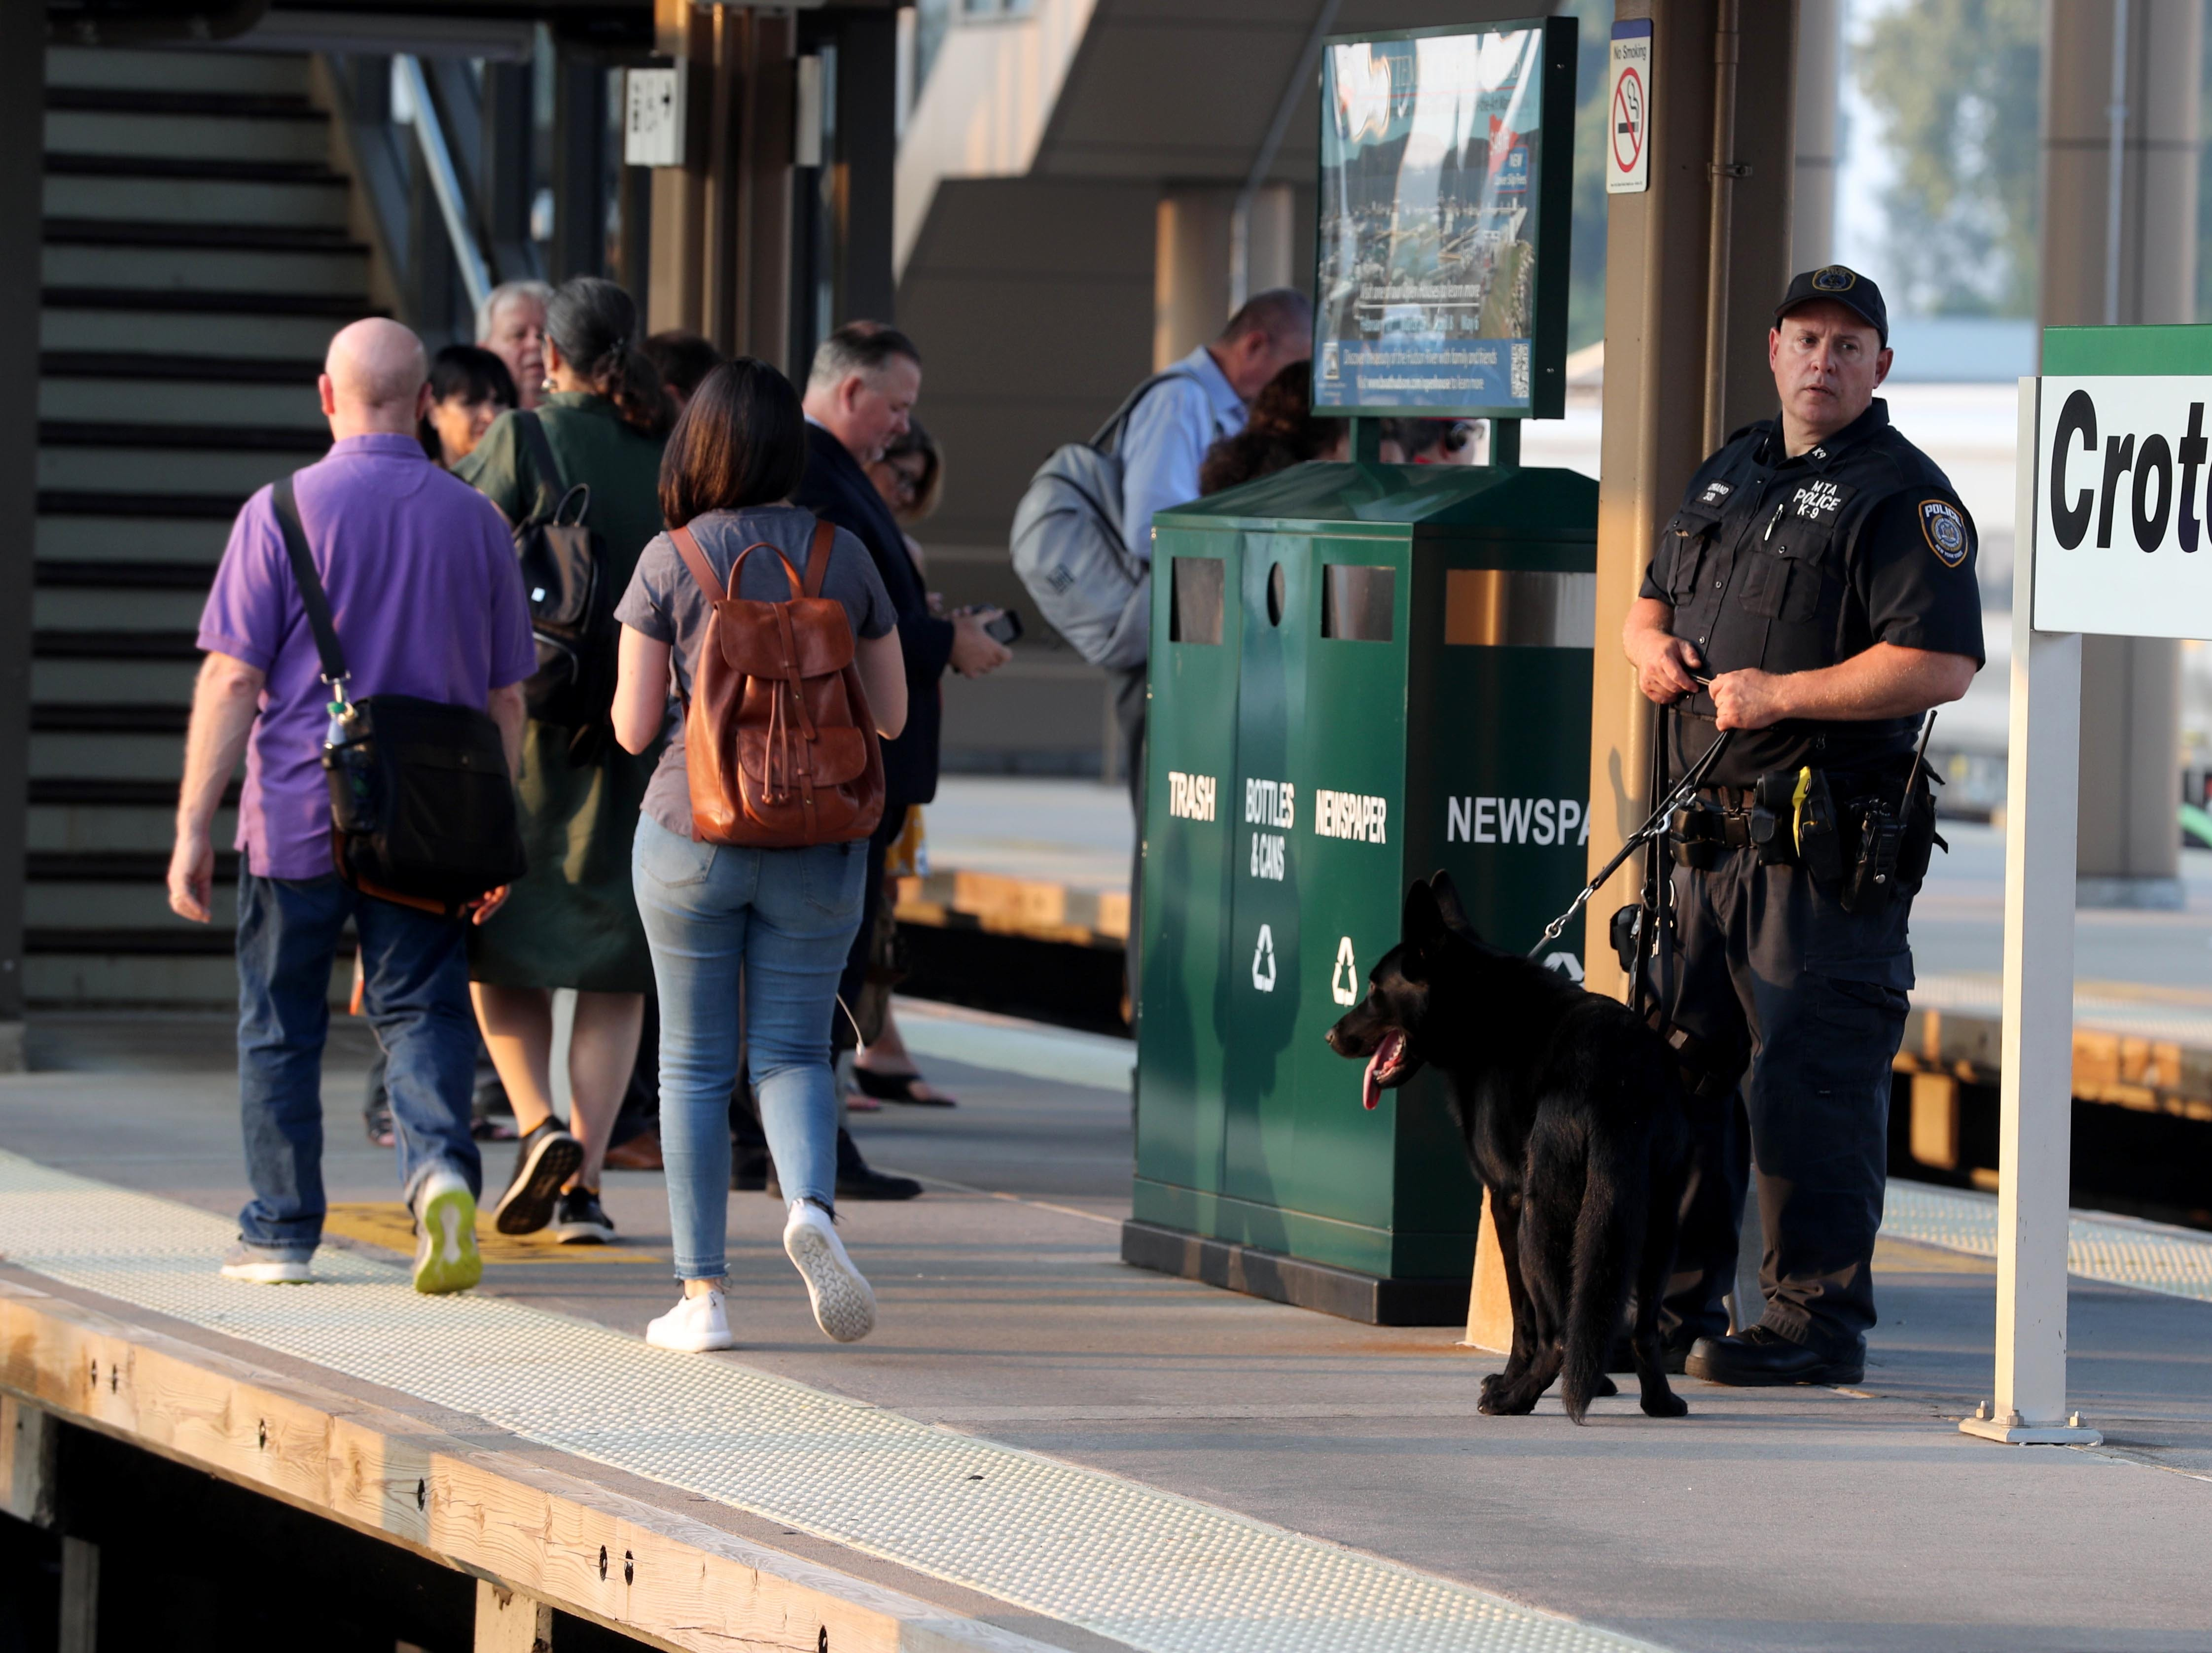 An MTA police officer and his canine partner stand on the platform at the Croton-Harmon station during a multi-department safety drill Aug. 28, 2018. Officers from the MTA, Amtrak, Croton Harmon, New York State Police, TSA, and Department of Homeland Security departments took part in the drill during the morning rush hour. The drill involved heightened platform patrols, increased security presence onboard trains, explosives detection canine sweeps, and counter-surveillance measures. Similar drills were also held at several other Hudson Line stations.